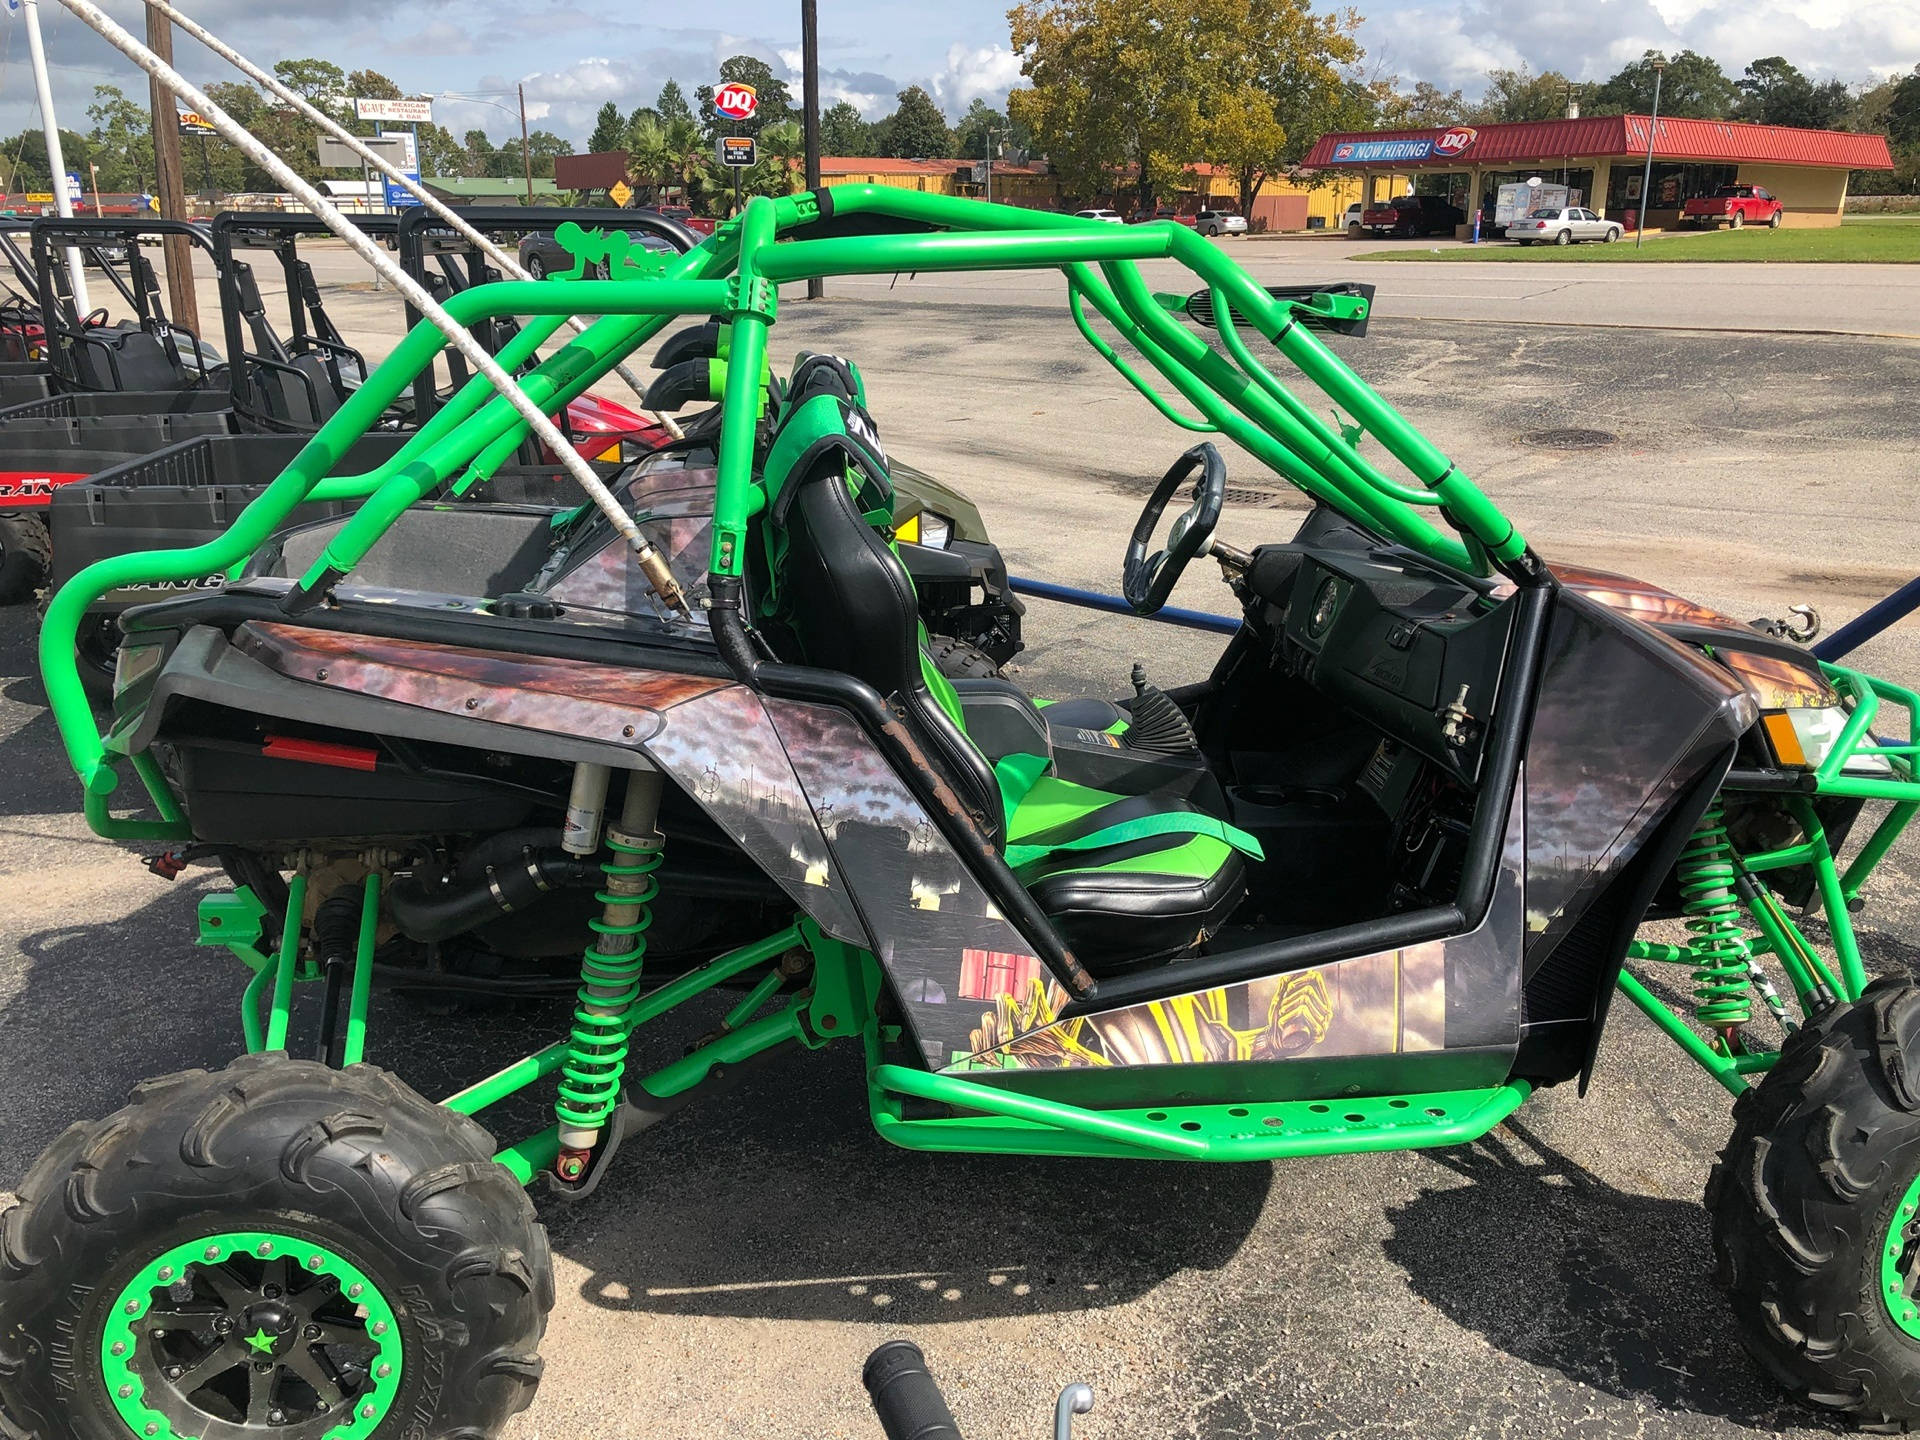 2012 Arctic Cat Wildcat™ 1000i H.O. in Cleveland, Texas